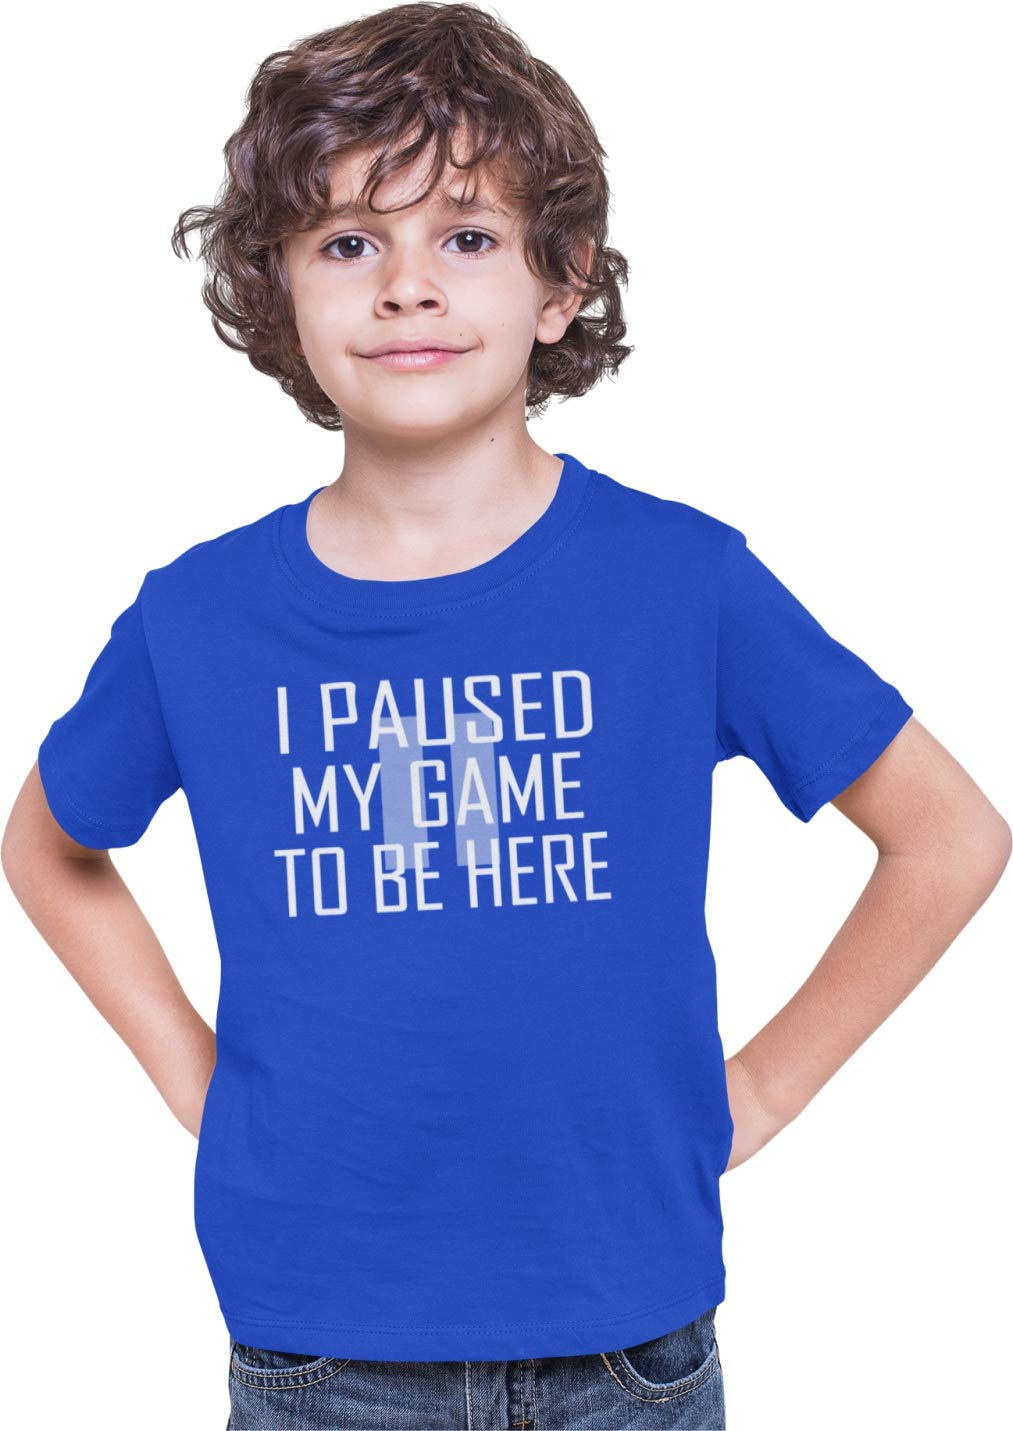 Go All Out Youth Classy I Paused My Game to Be Here T-Shirt